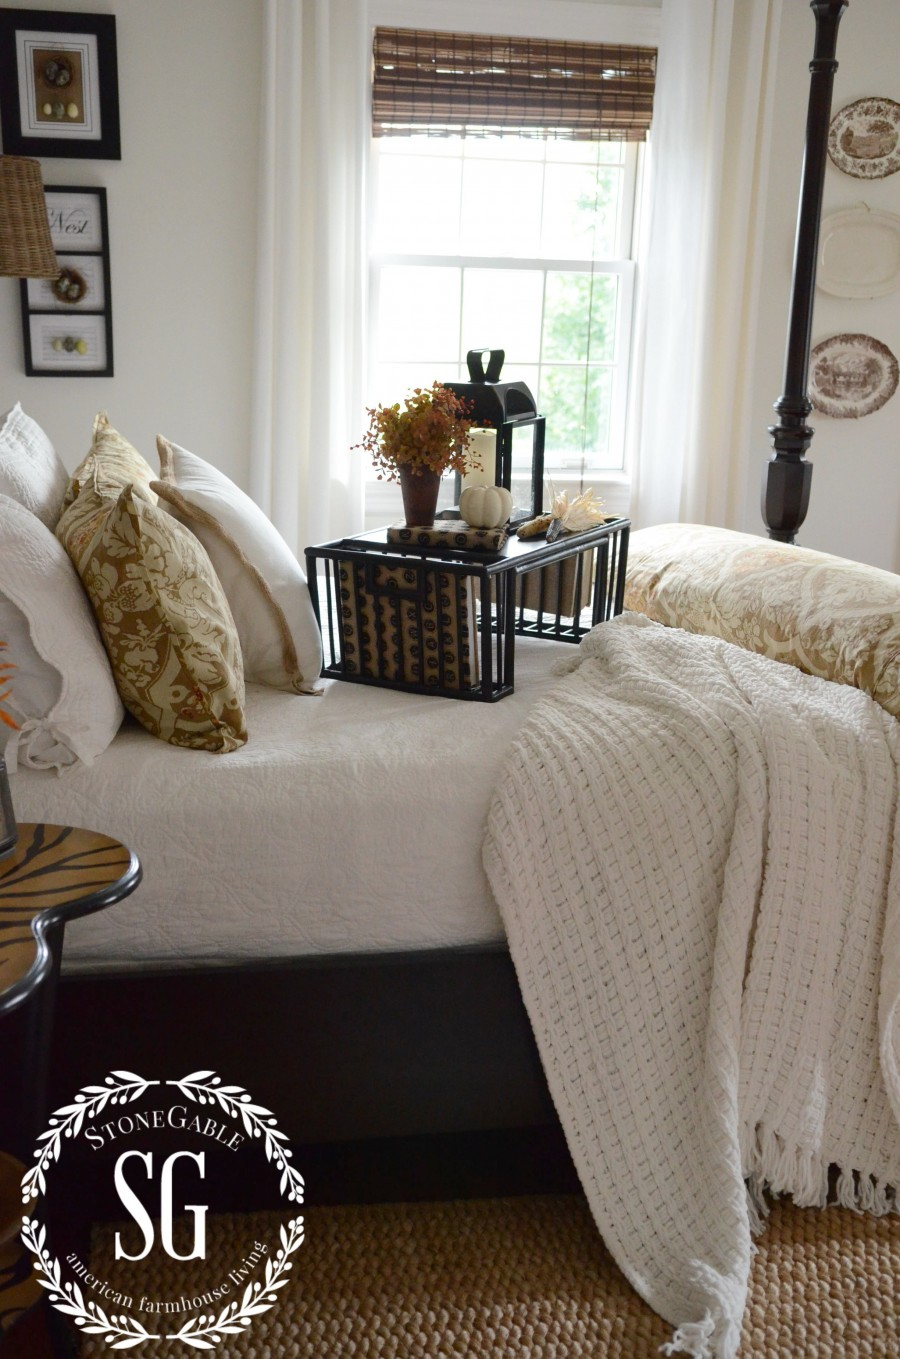 How To Know Your Decor Style Traditional Is Not Old Fashioned It S Clic